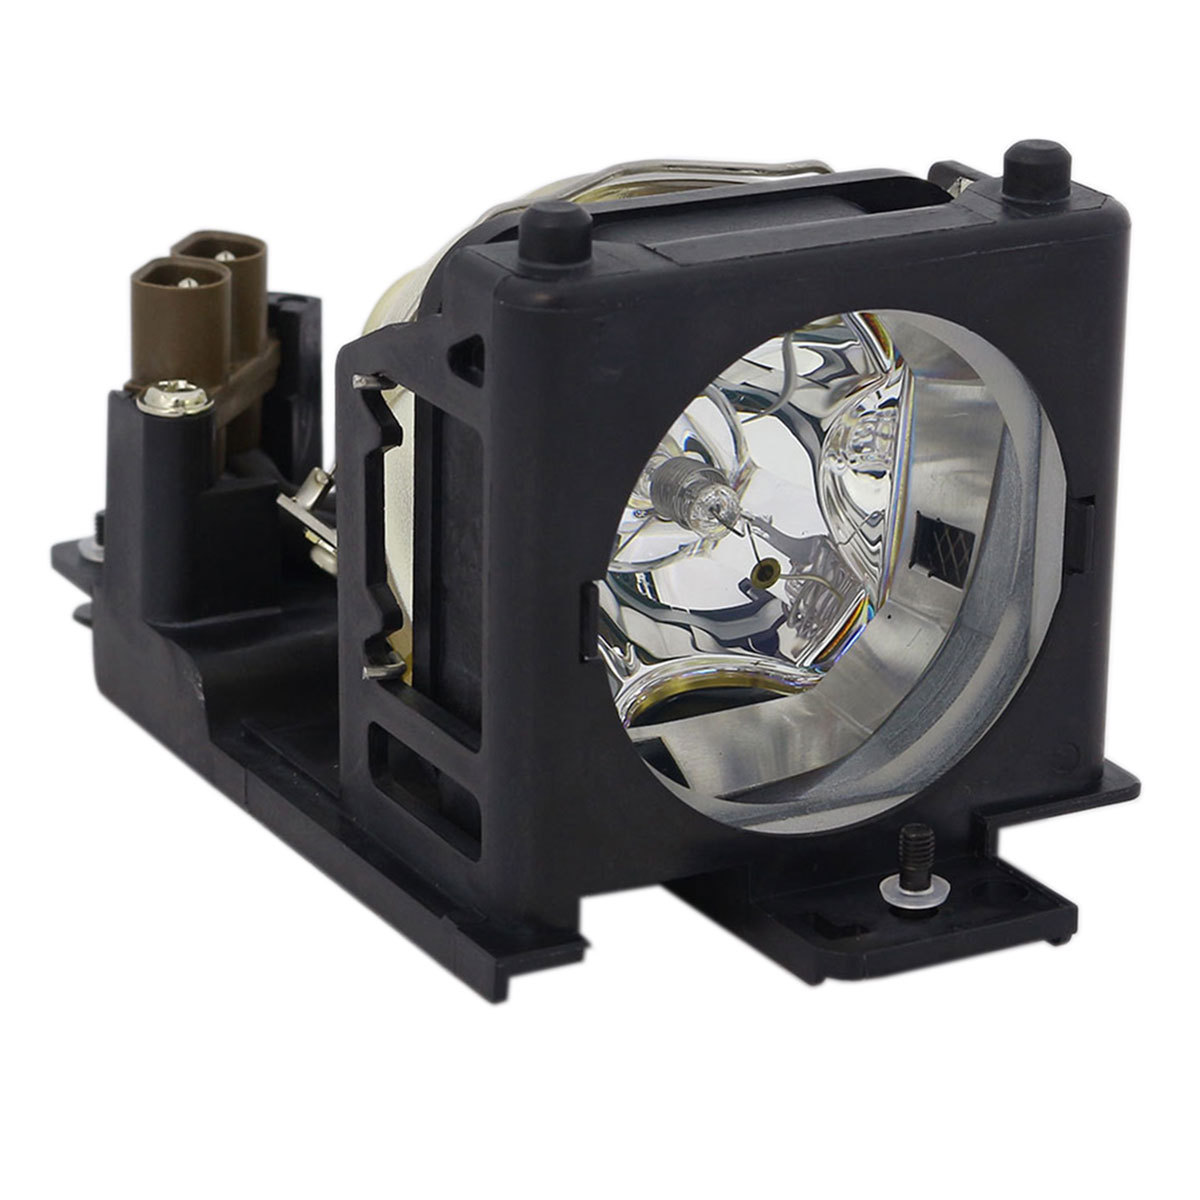 Primary image for Hitachi DT00701 Philips Projector Lamp Module